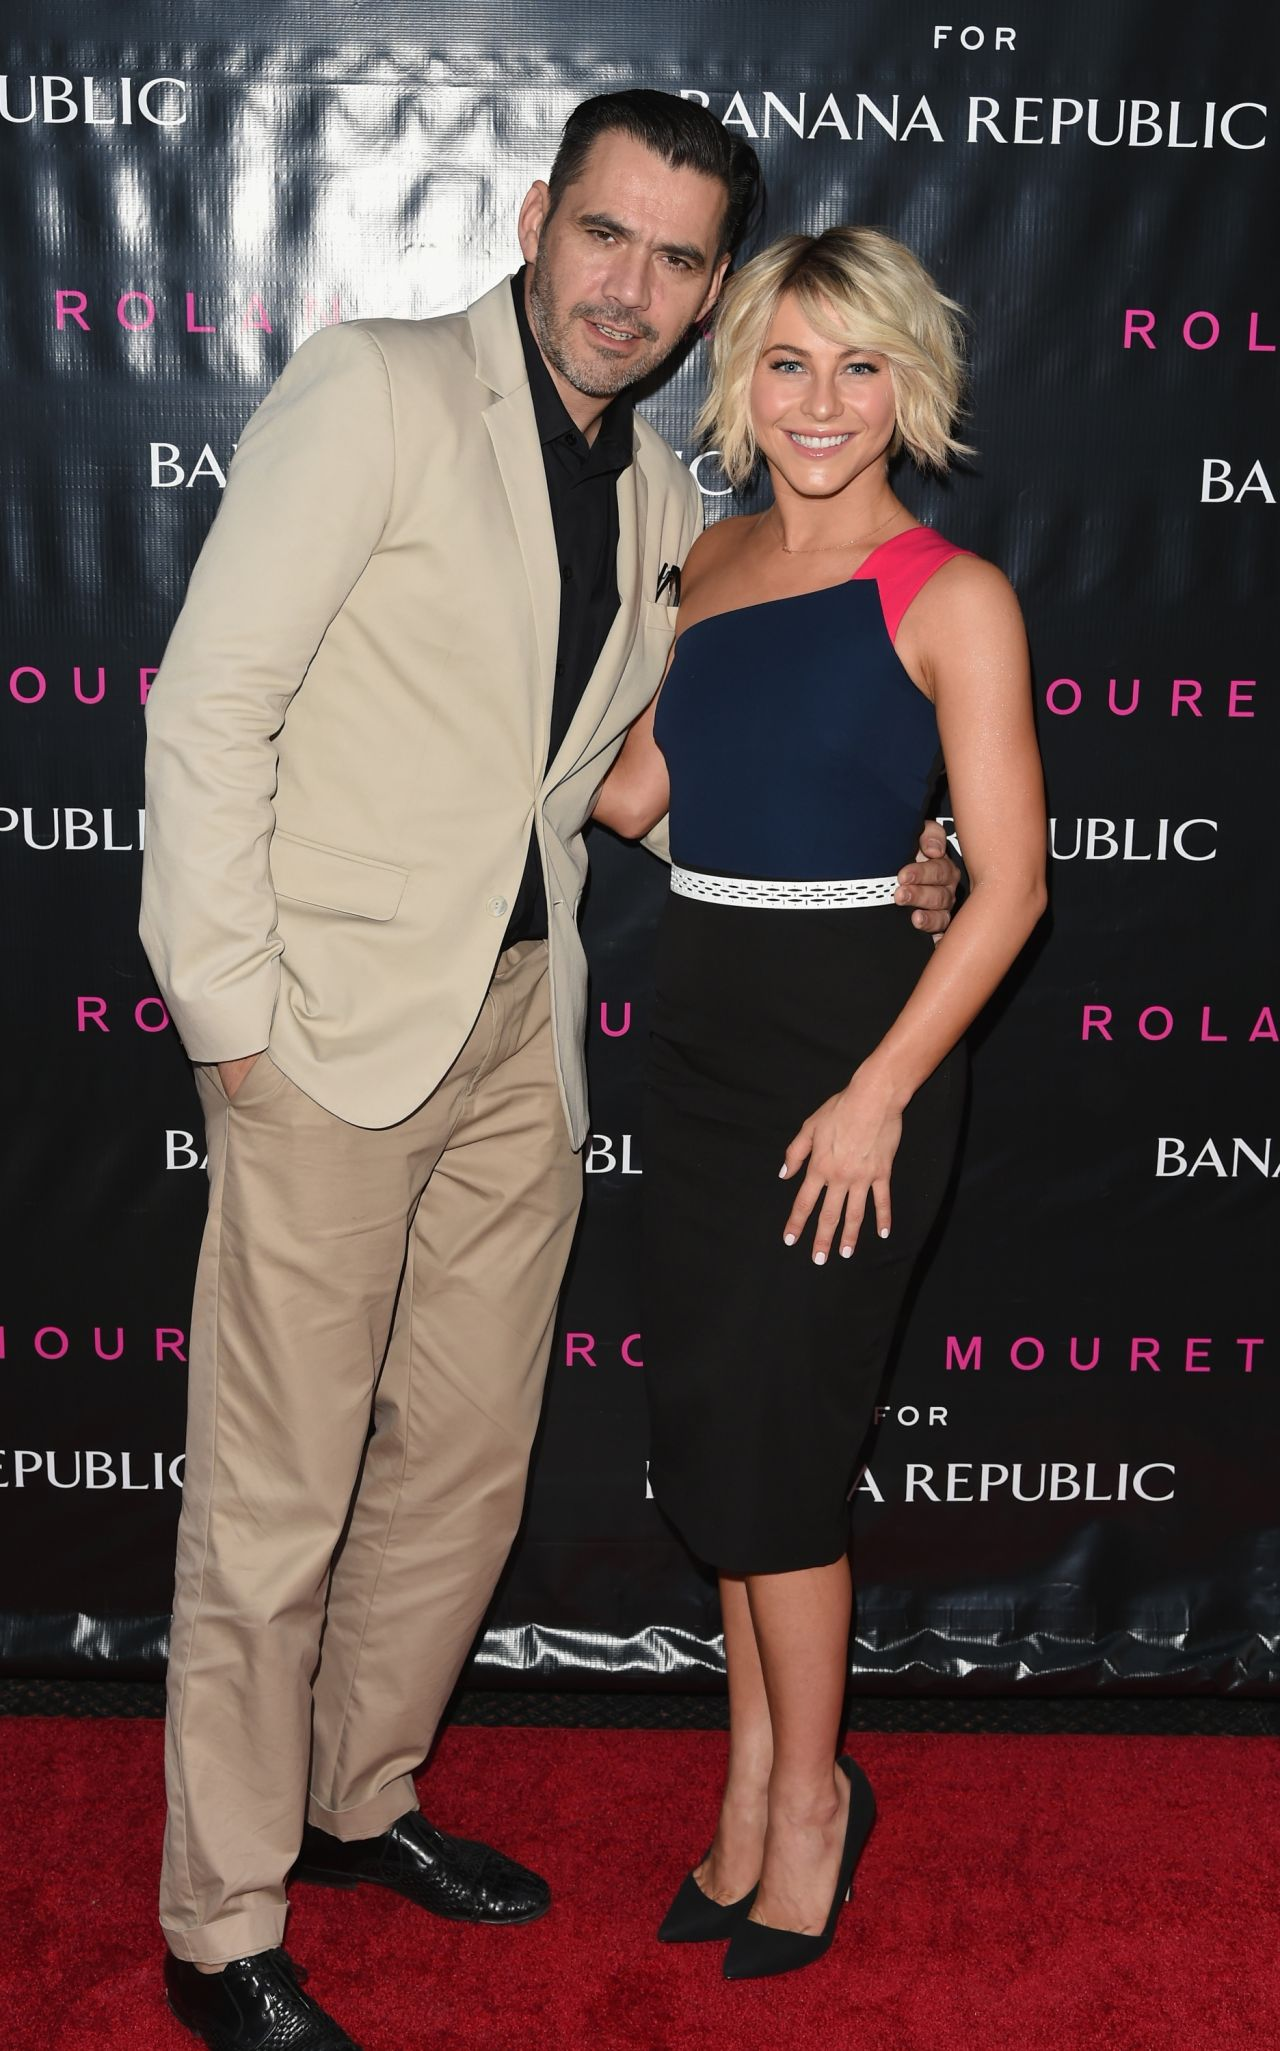 Julianne Hough - Banana Republic Debuts Roland Mouret Line